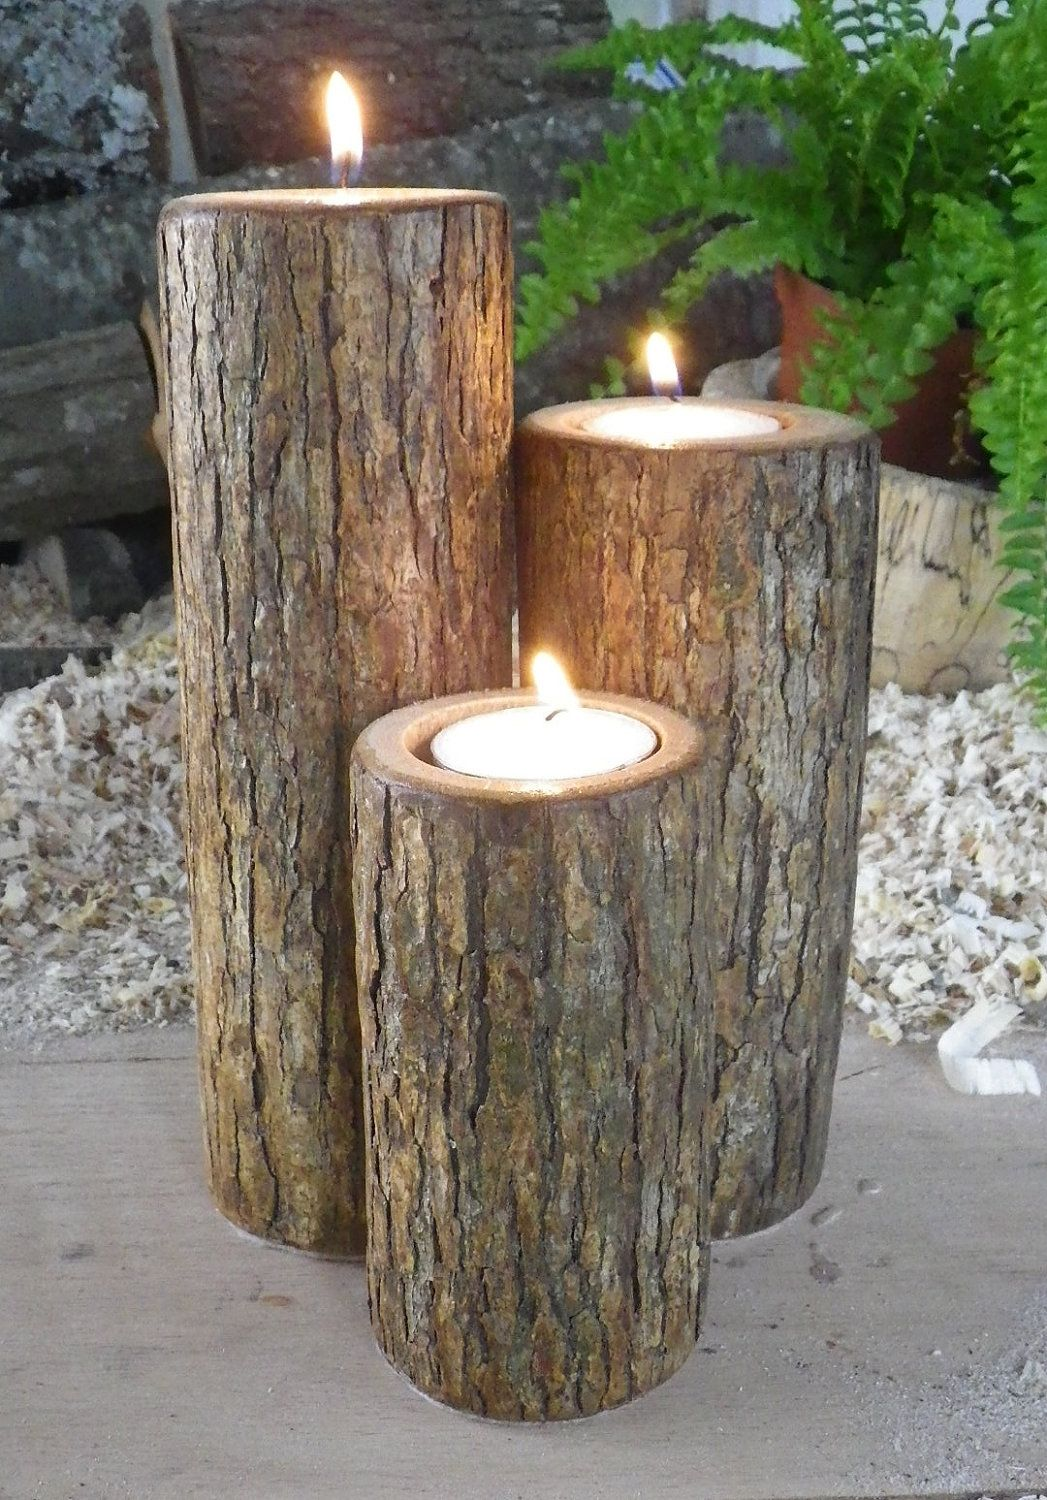 Natural bark candle holders hold tea light candles perfect for